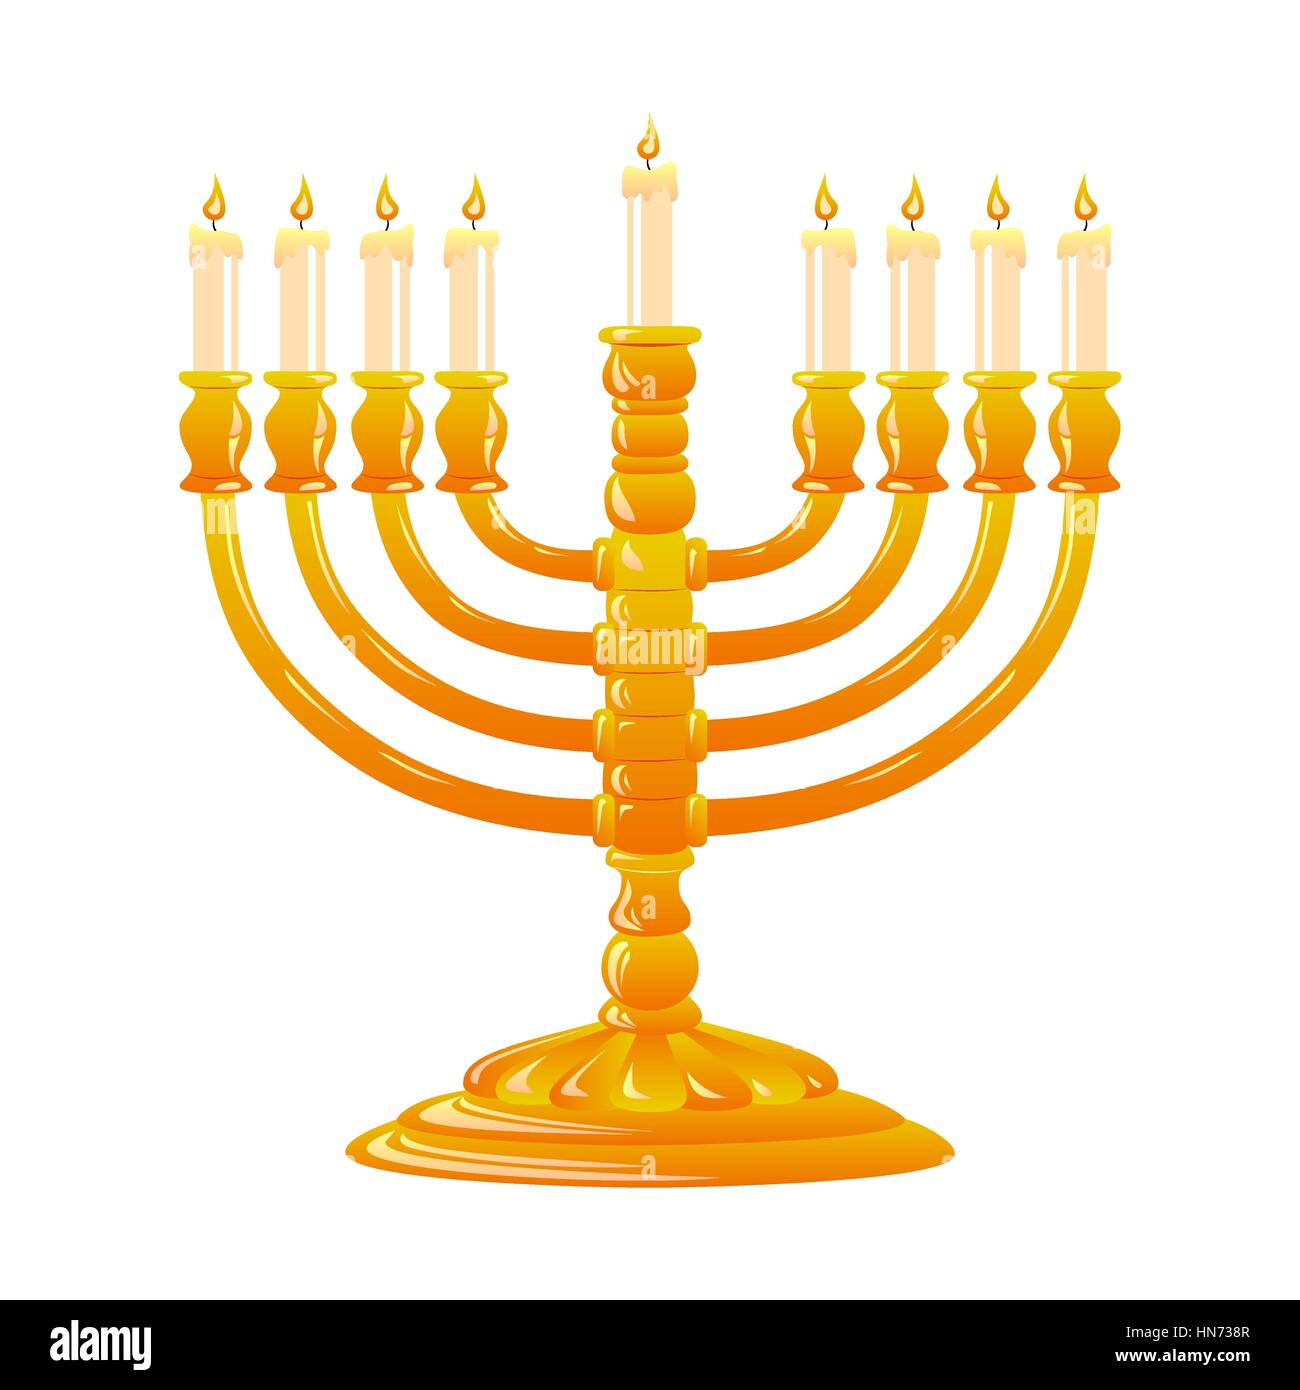 For Happy Hanukkah, jewish holiday. Golden menorah with burning candles on white background. Vector illustration. - Stock Vector